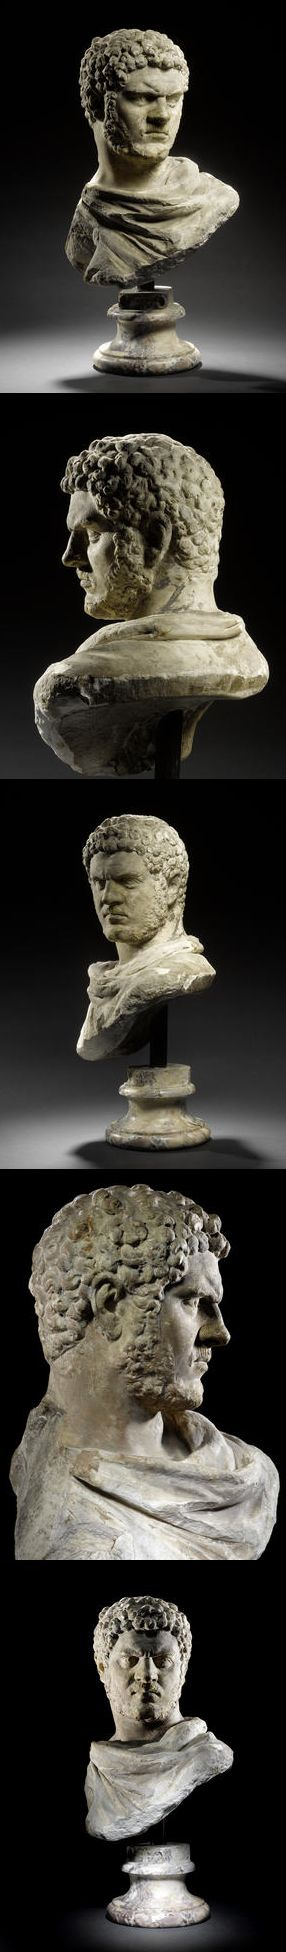 A Roman marble bust of the Emperor Caracalla  Late Severan Period, A.D. 212-217